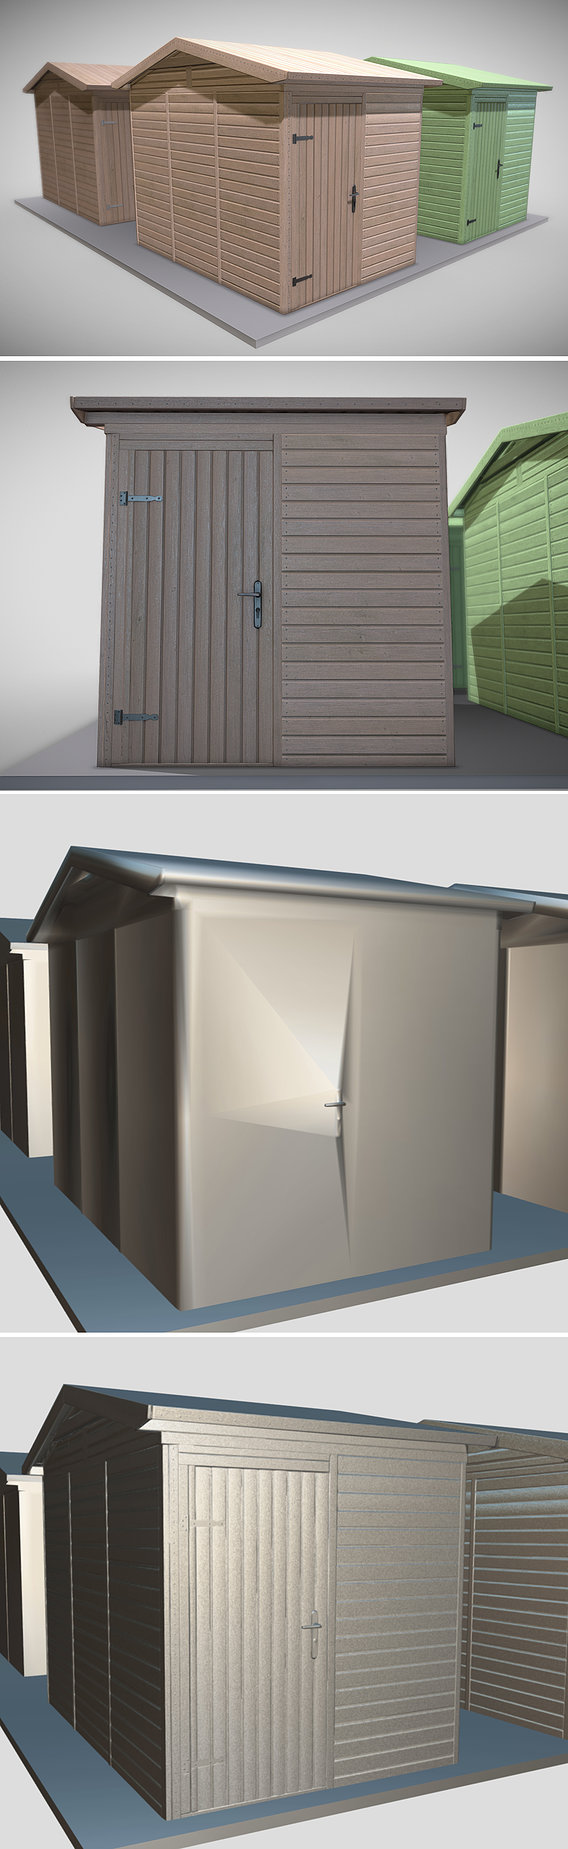 Wooden Garden Shed (Low-Poly Version)